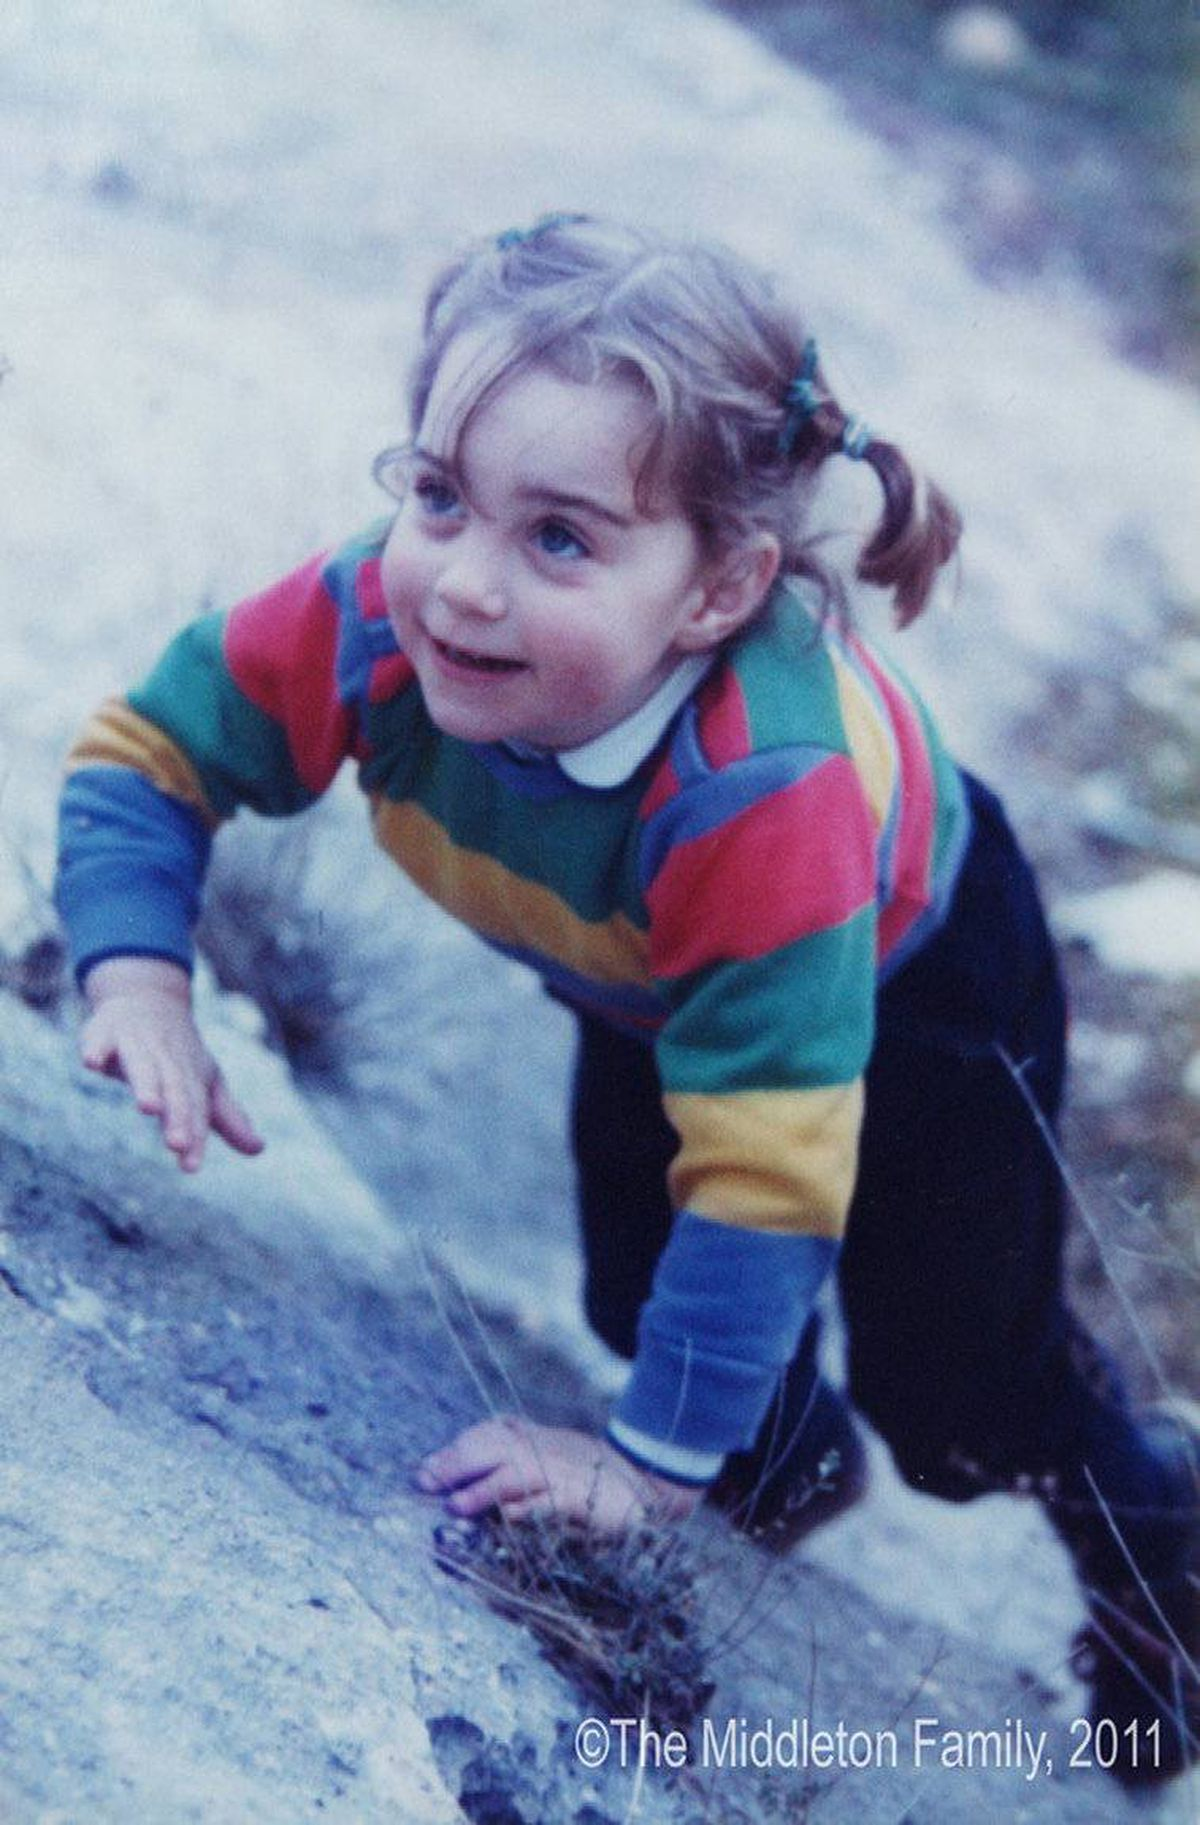 A three-year-old Kate Middleton on holiday in the Lake District, north-west England.